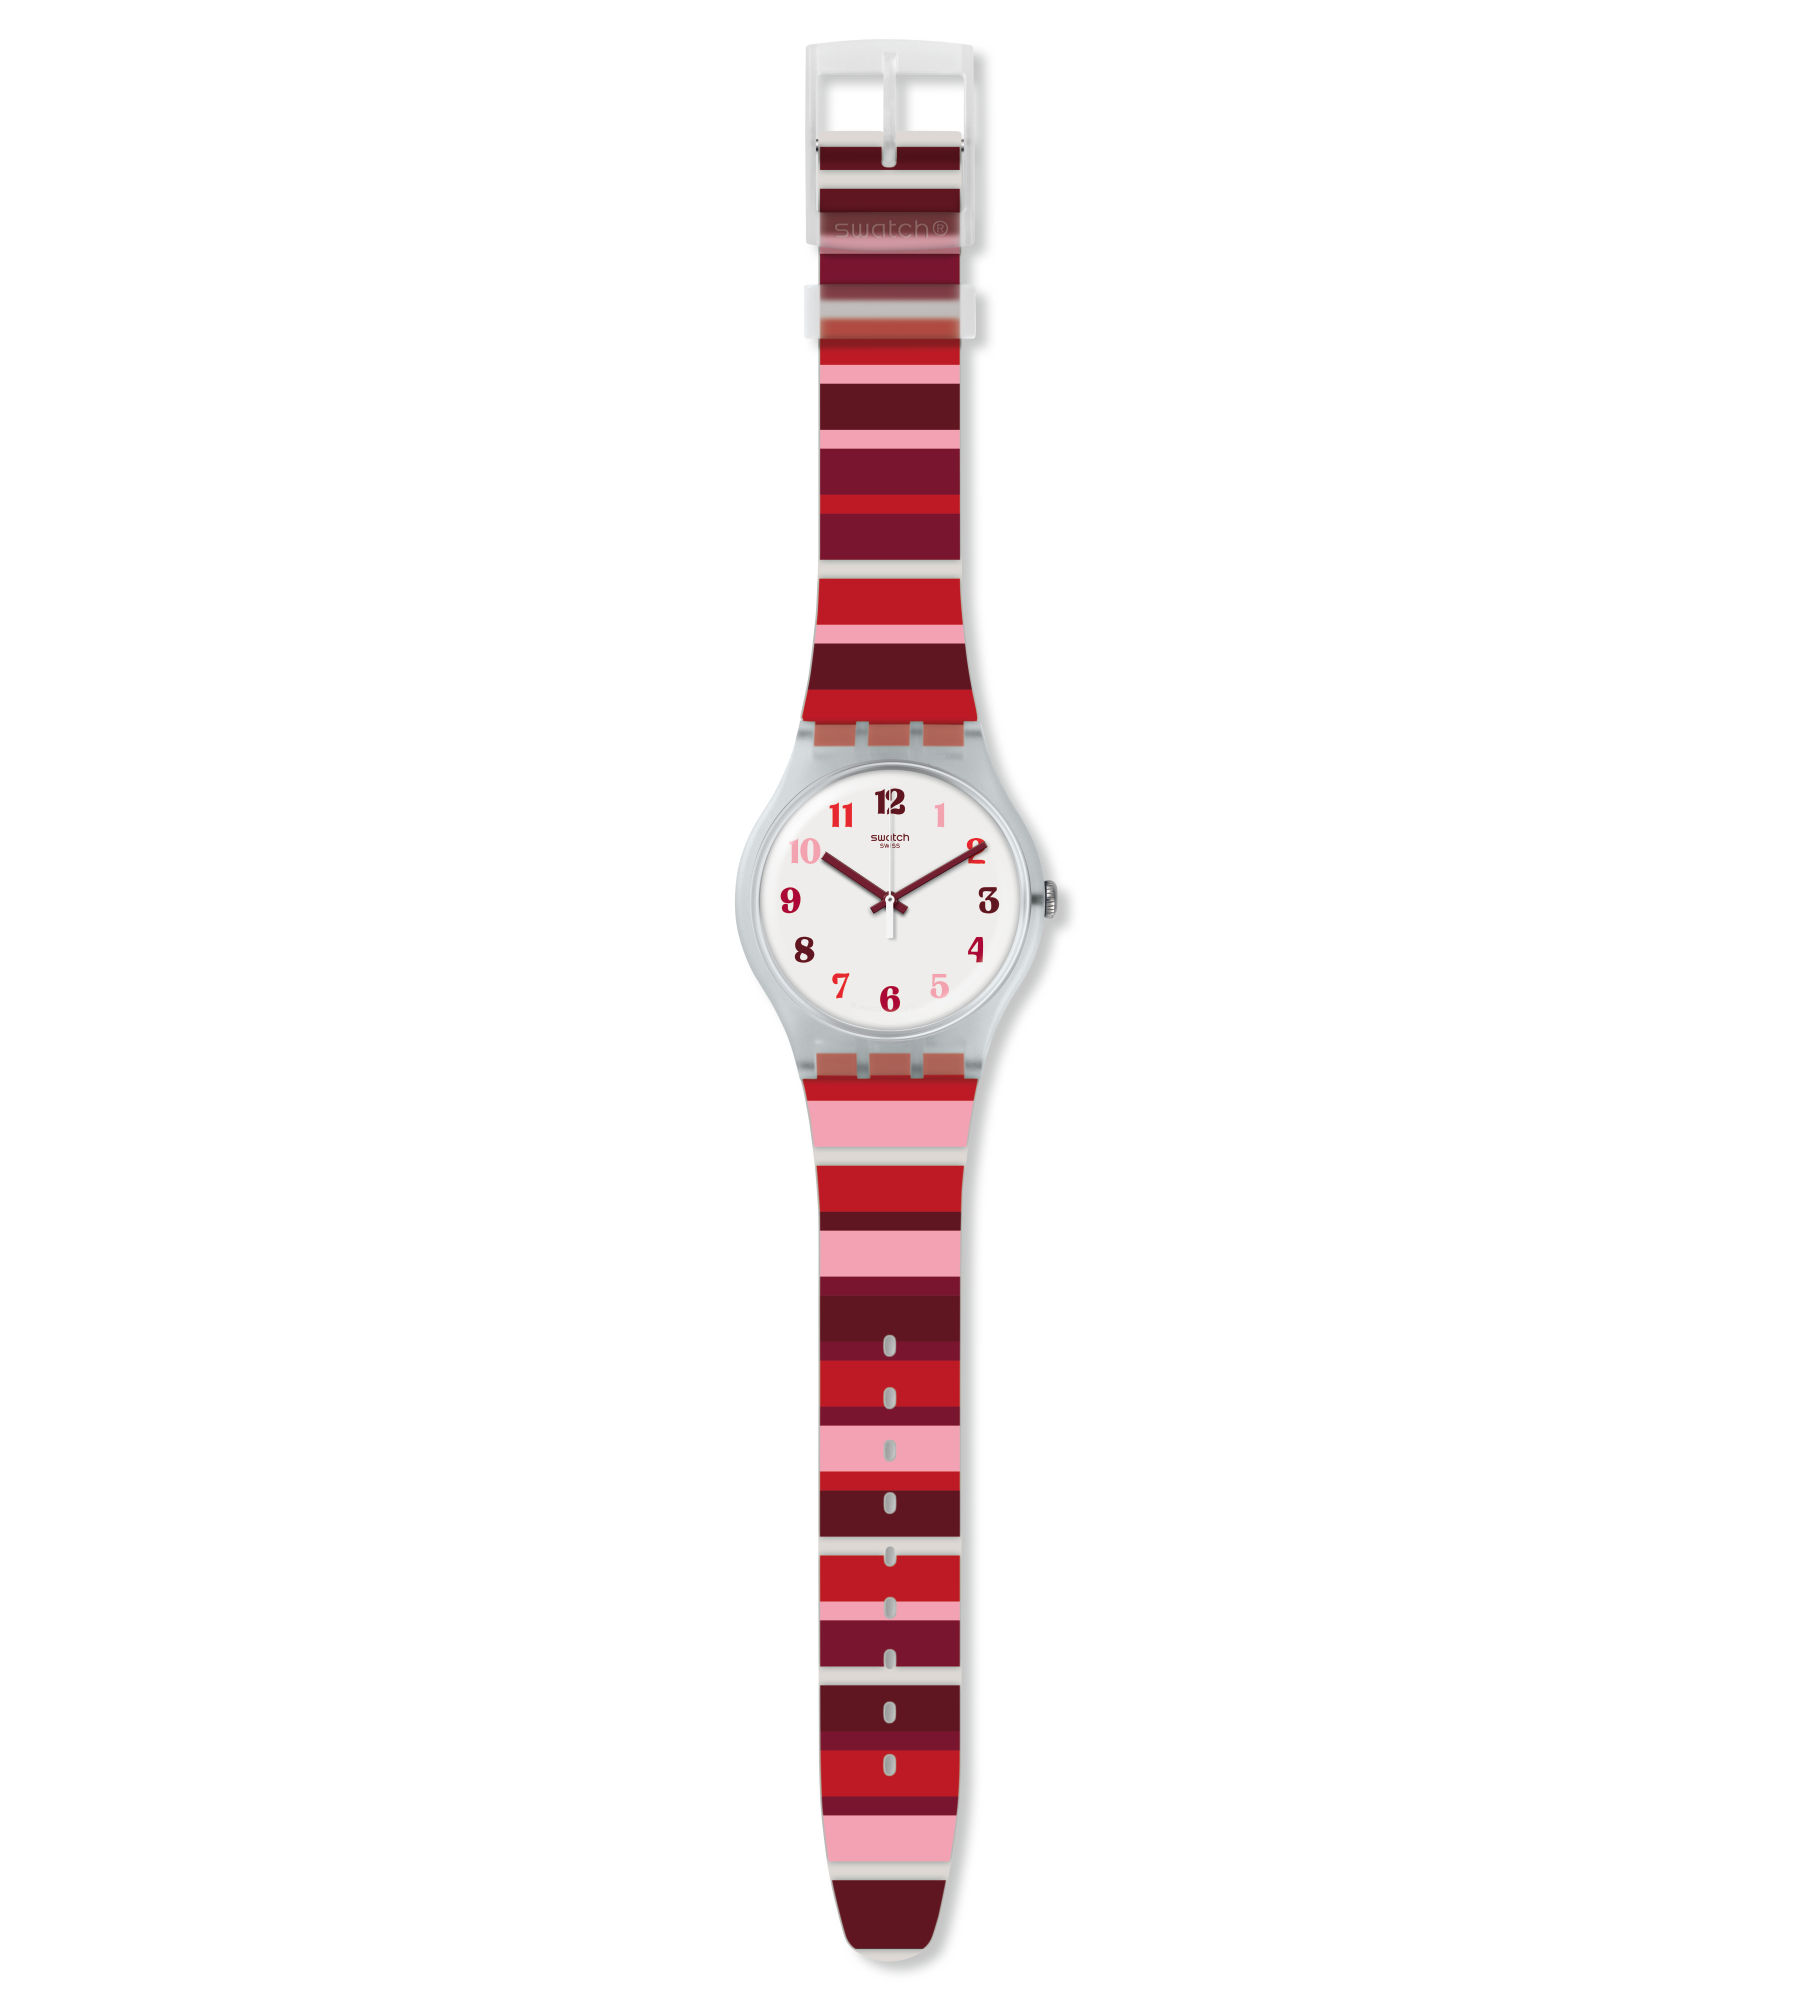 SWATCH WATCH UNISEX SUNSET THE SETTING SUN REF. SUOK138